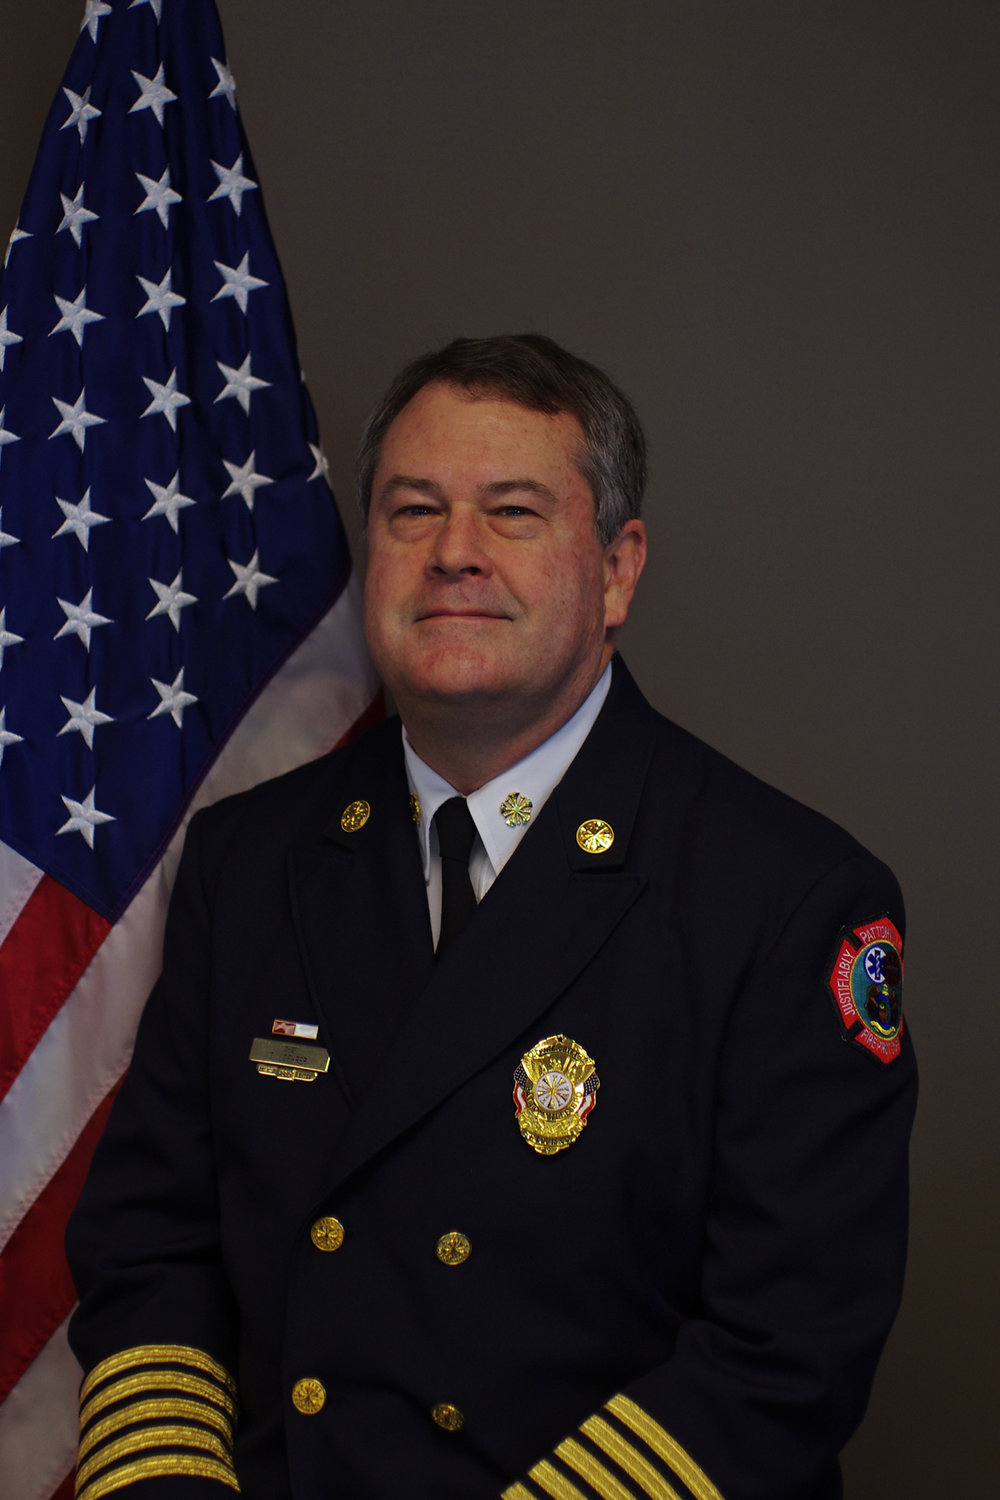 Fire Chief Terry Loehrer